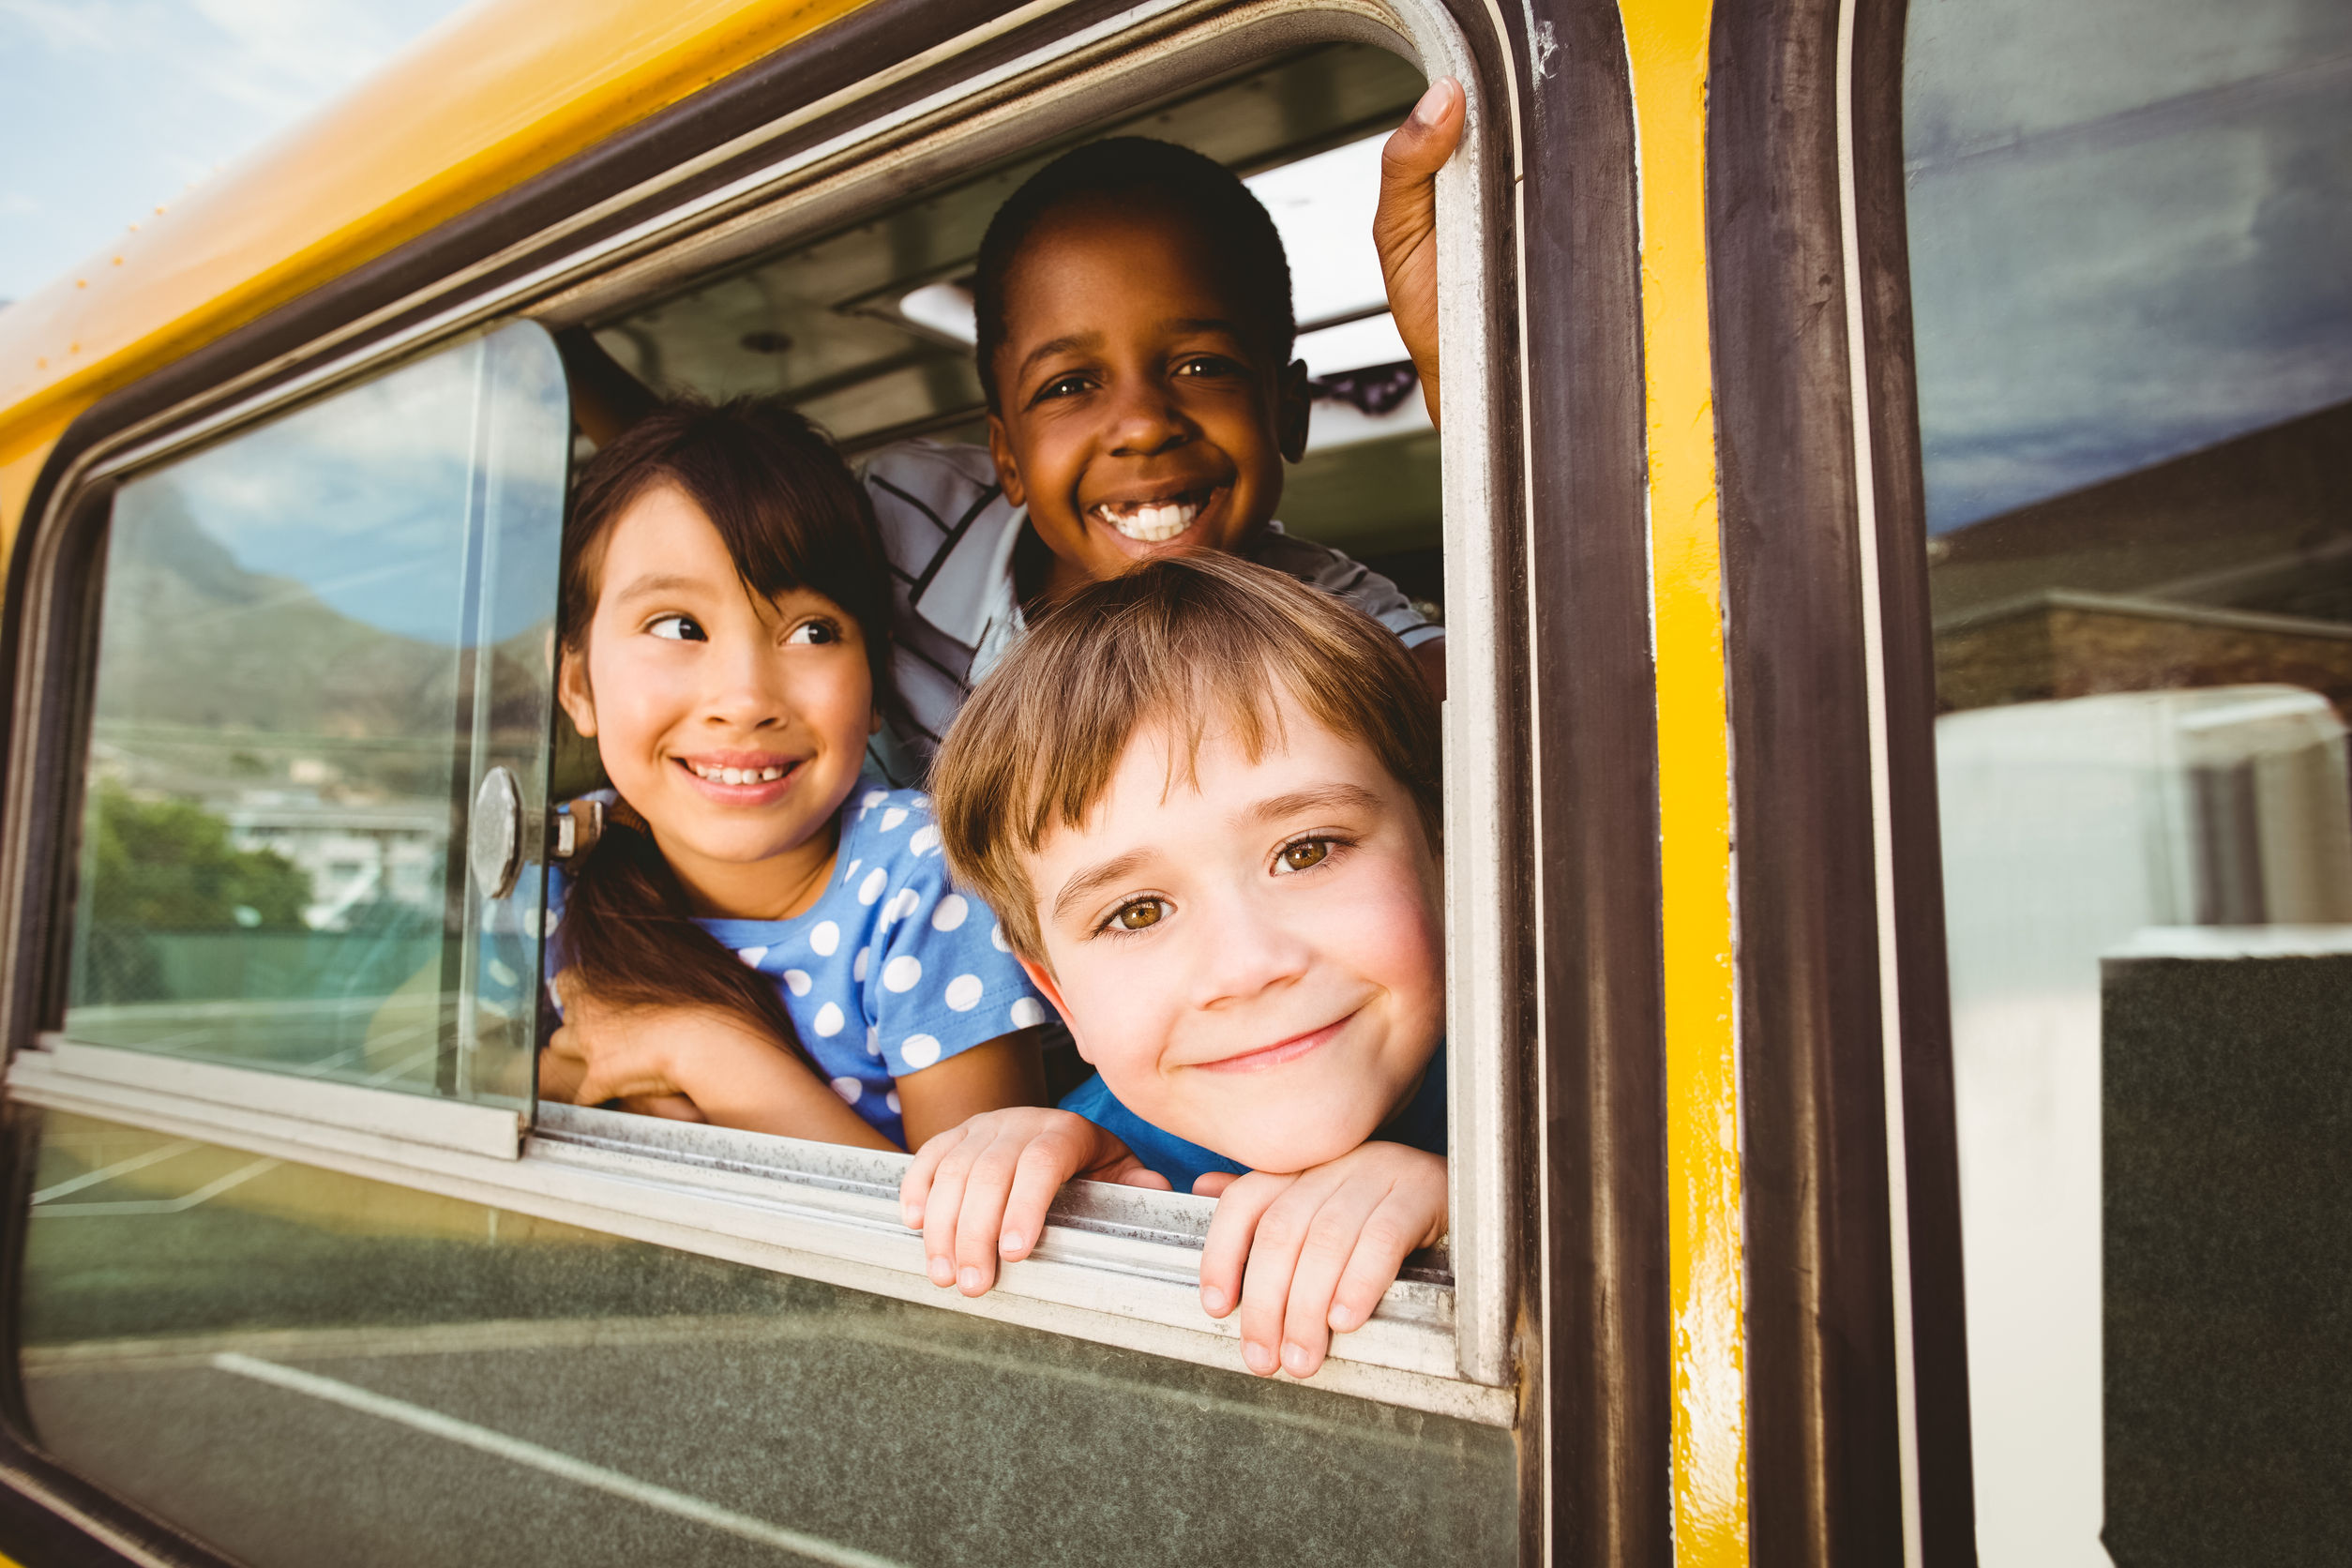 cute kids on school bus